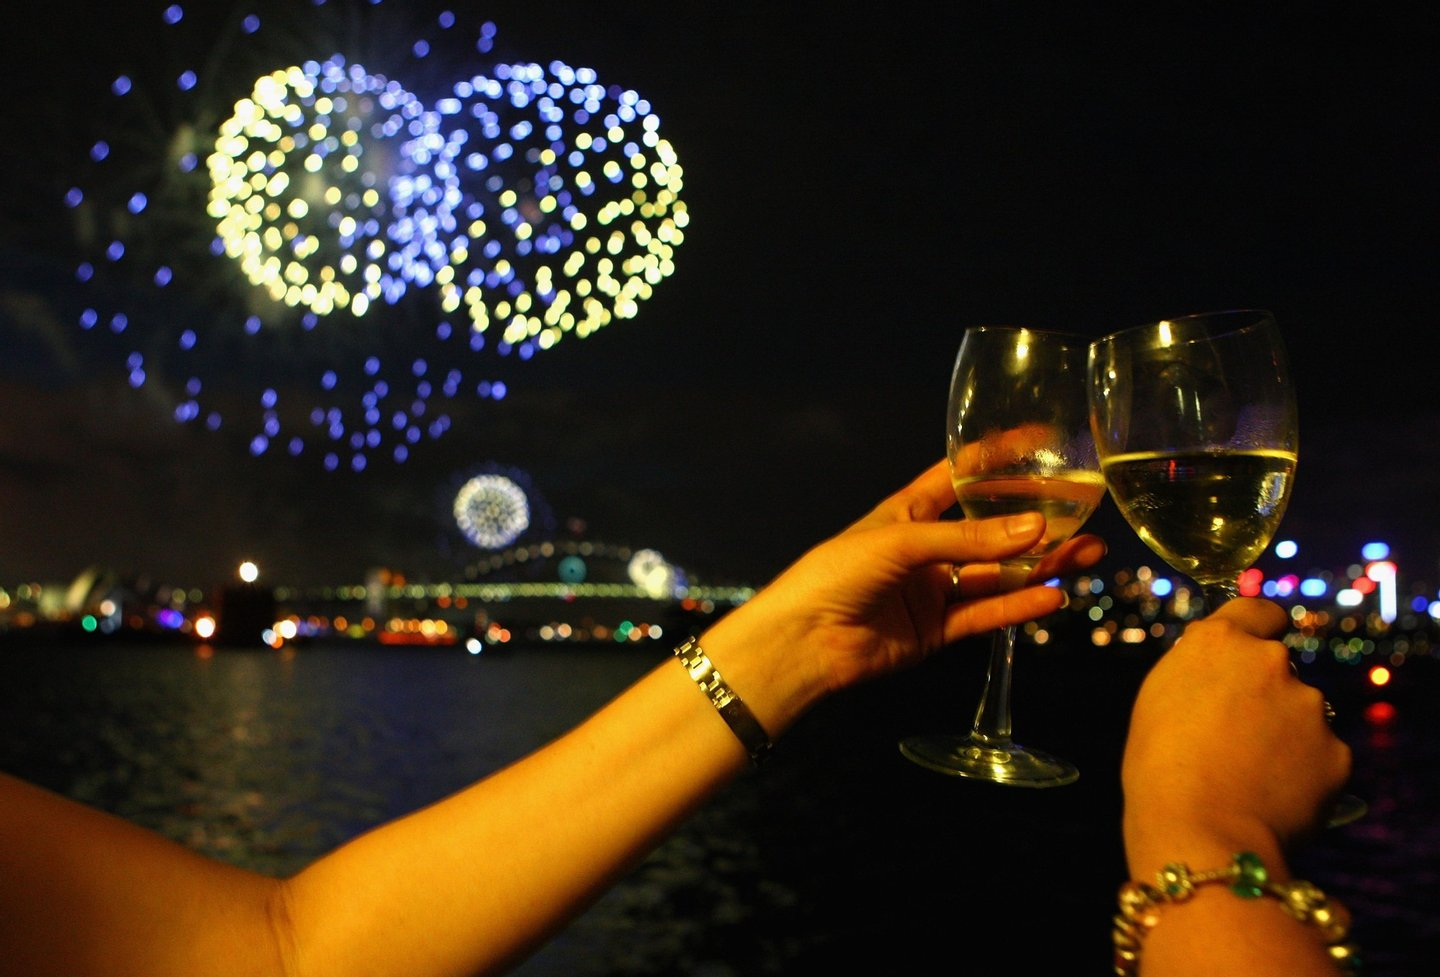 SYDNEY, AUSTRALIA - DECEMBER 31:  People toast their wine glasses as the annual New Year's Eve fireworks display illuminates the sky over Sydney Harbour on December 31, 2009 in Sydney, Australia. The 2009 into 2010 theme is 'Awaken The Spirit' with over 1.5 million people expected to gather around the harbour to watch the 12 minute show.  (Photo by Ryan Pierse/Getty Images)